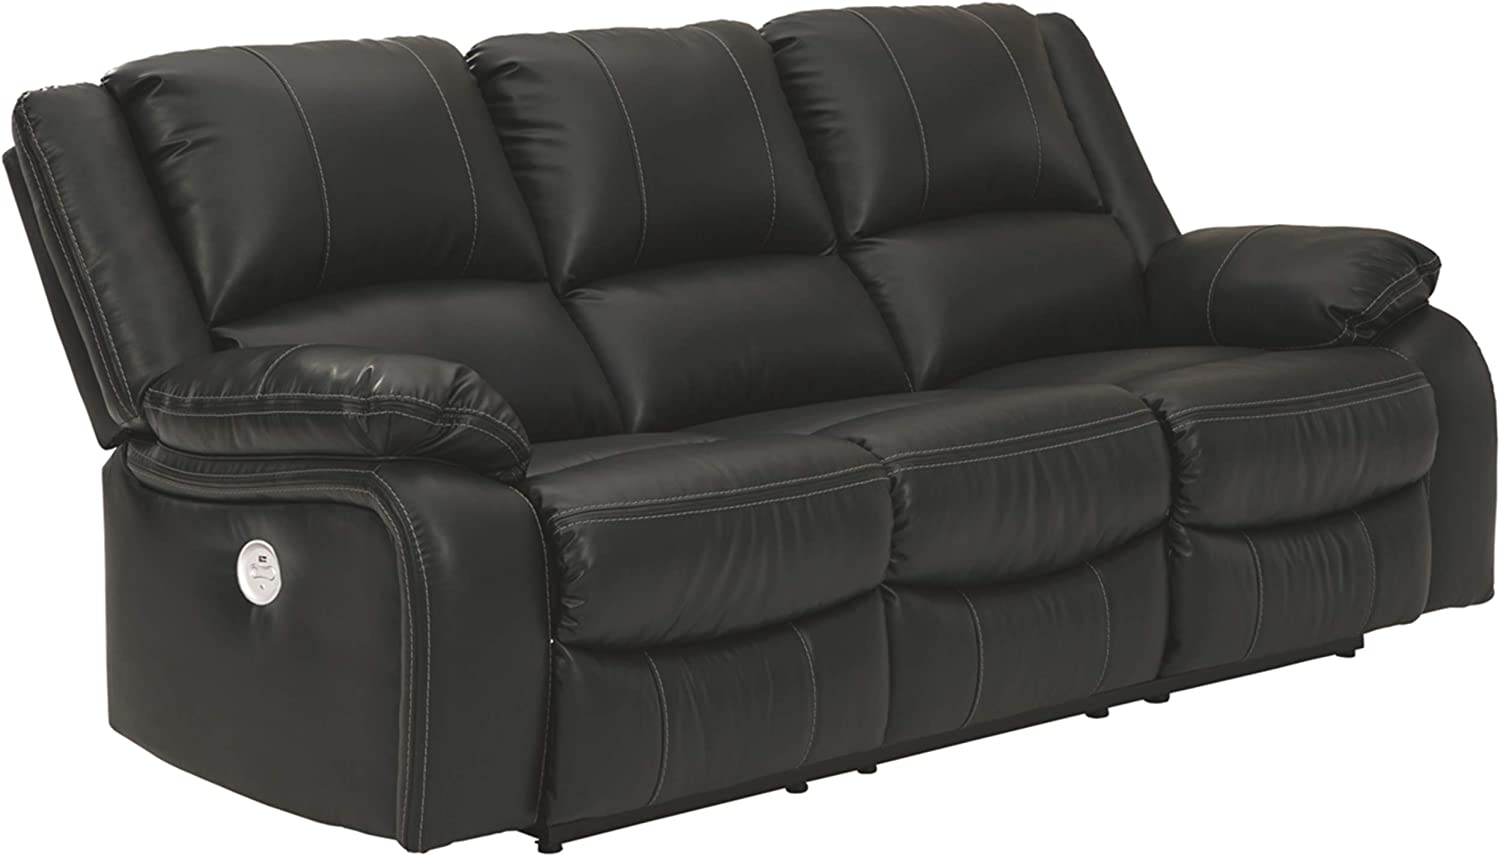 Signature Design by Ashley - Calderwell Contemporary Faux Leather Power Reclining Sofa - Adjustable - Black